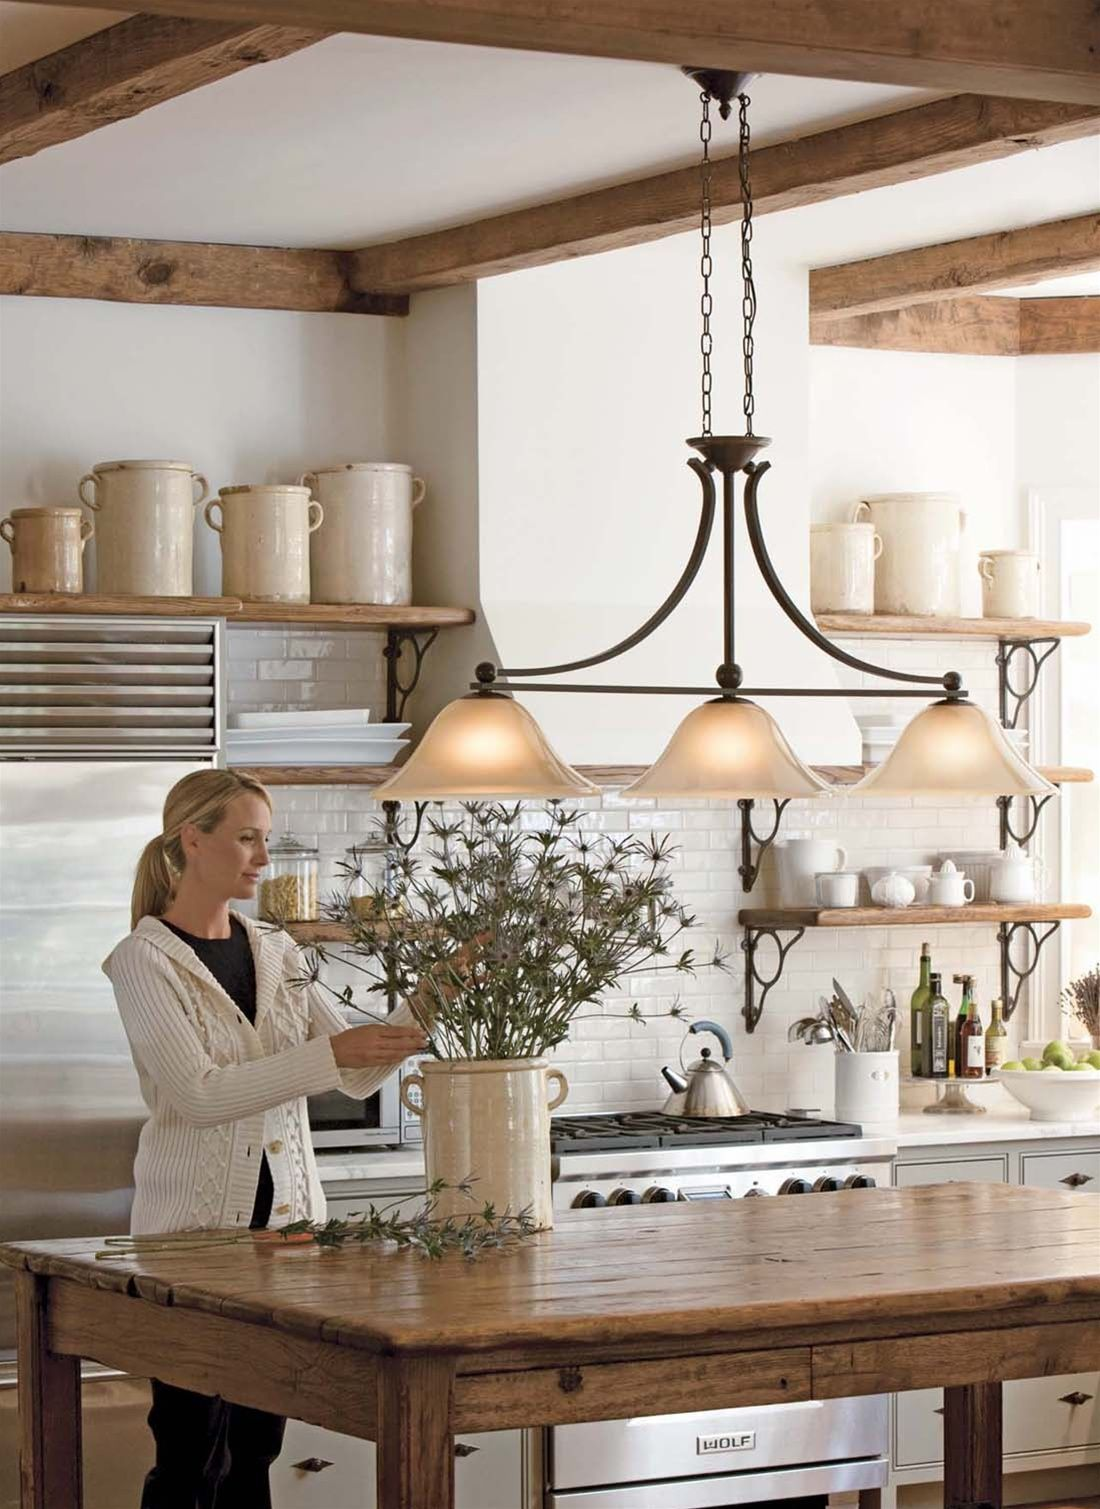 island chandelier lighting. Love The Island Light! Farmhouse Kitchens Design, Pictures, Remodel, Decor And Ideas - Page 46 Chandelier Lighting A